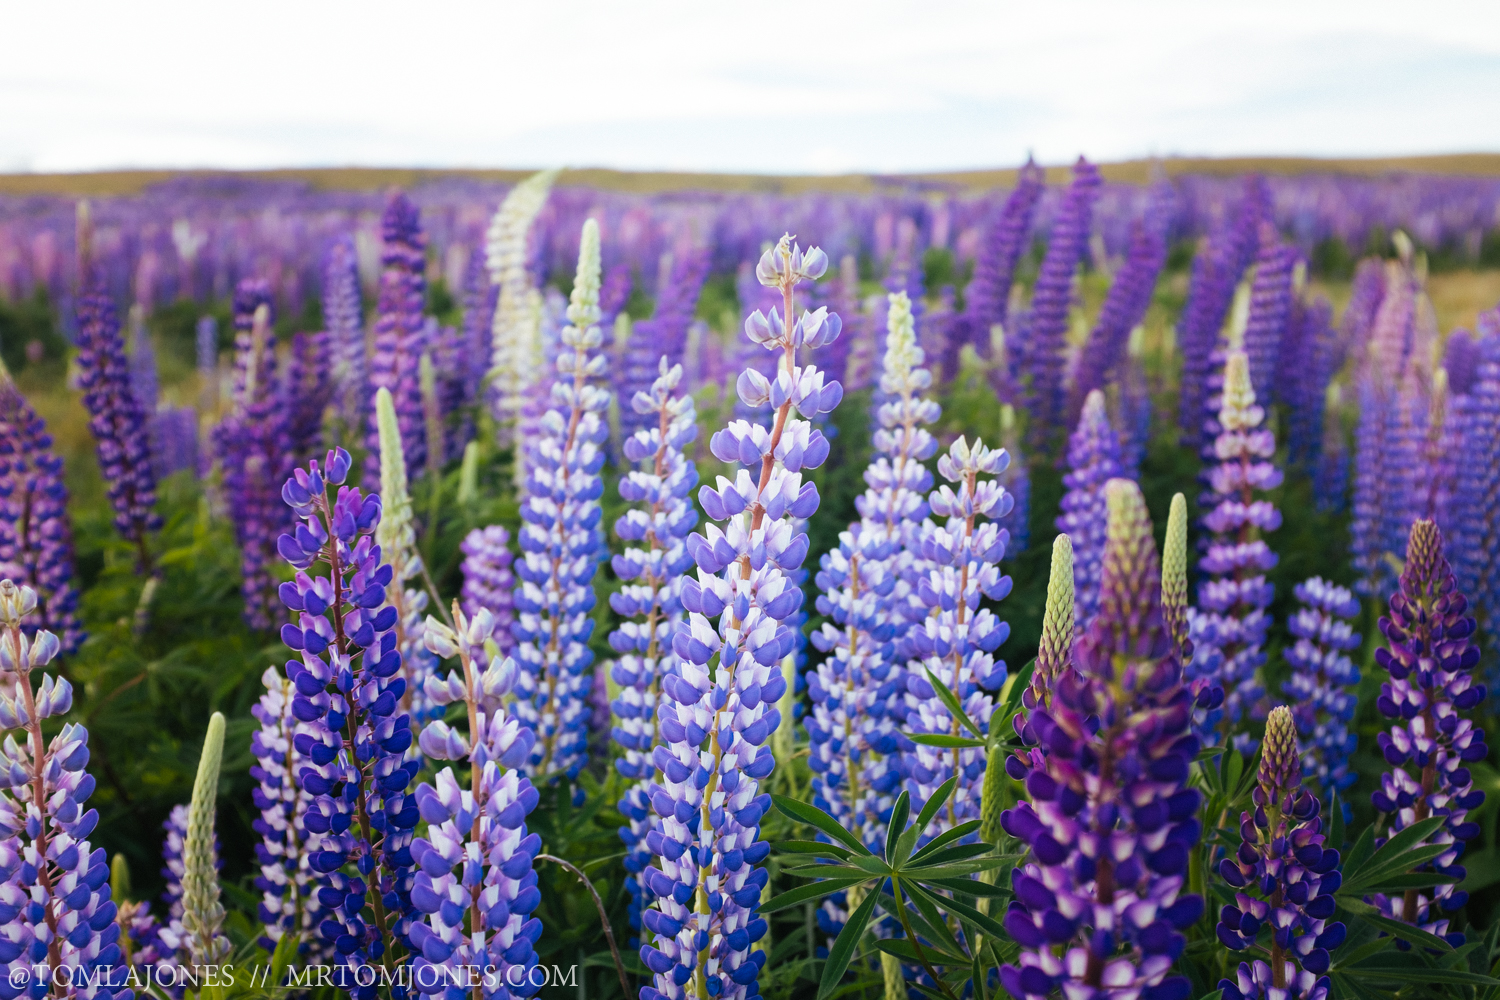 The invasive Lupin flower. Like us humans here, they're not native, but by gosh are they beautiful.